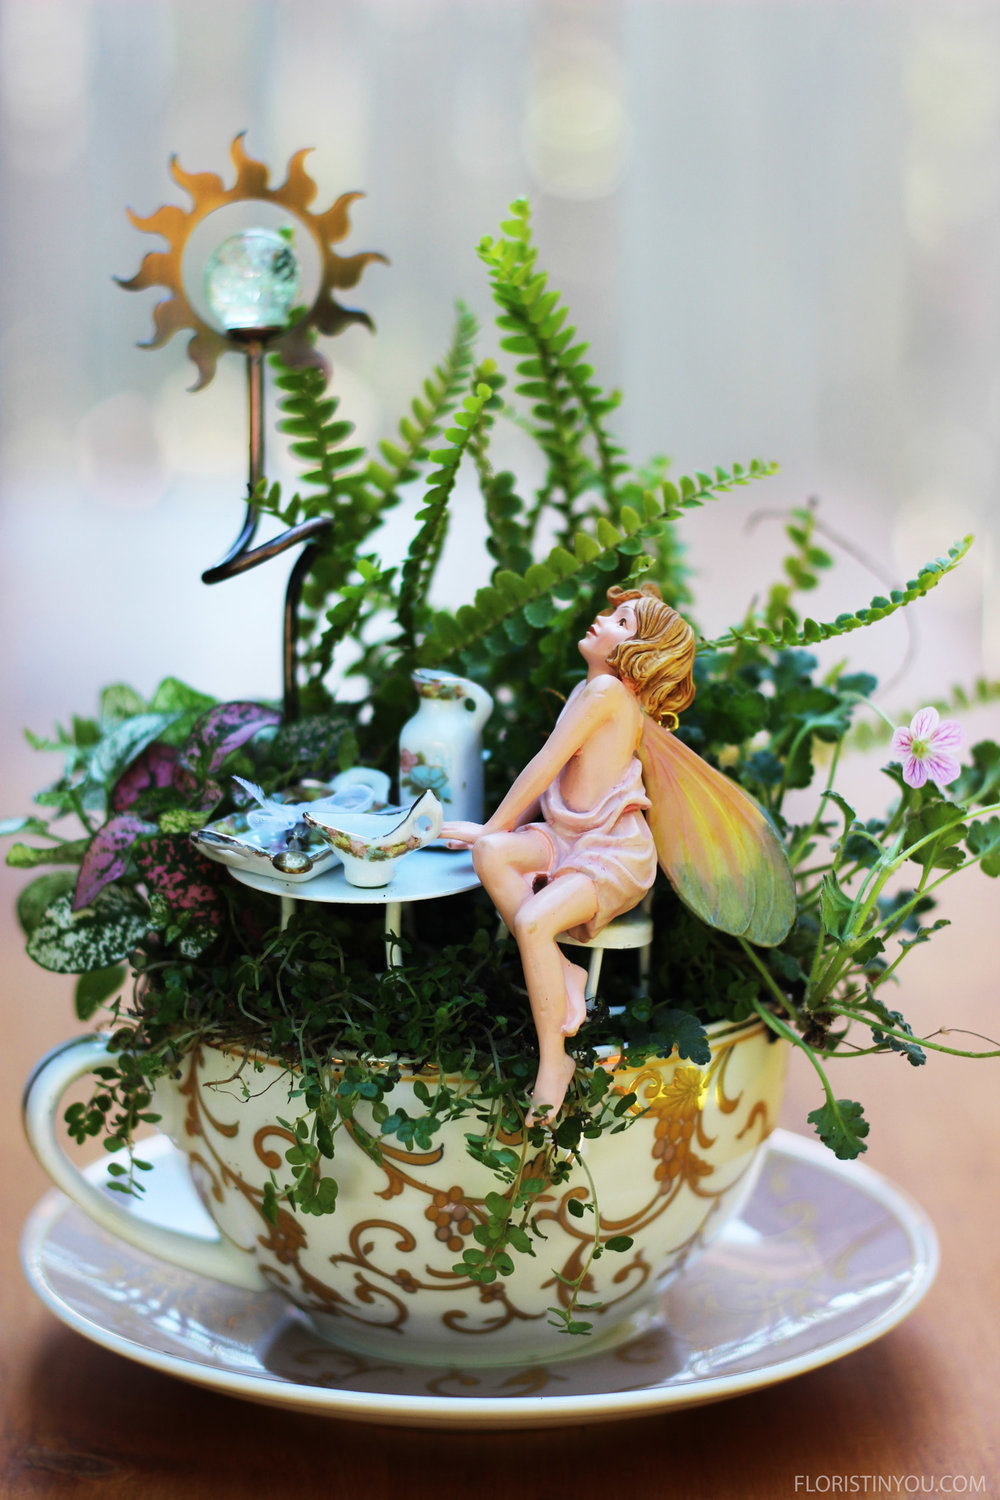 "How to Make a Teacup Fairy Garden                     Normal   0           false   false   false     EN-US   JA   X-NONE                                                                                                                                                                                                                                                                                                                                                                              /* Style Definitions */ table.MsoNormalTable 	{mso-style-name:""Table Normal""; 	mso-tstyle-rowband-size:0; 	mso-tstyle-colband-size:0; 	mso-style-noshow:yes; 	mso-style-priority:99; 	mso-style-parent:""""; 	mso-padding-alt:0in 5.4pt 0in 5.4pt; 	mso-para-margin:0in; 	mso-para-margin-bottom:.0001pt; 	mso-pagination:widow-orphan; 	font-size:12.0pt; 	font-family:Cambria; 	mso-ascii-font-family:Cambria; 	mso-ascii-theme-font:minor-latin; 	mso-hansi-font-family:Cambria; 	mso-hansi-theme-font:minor-latin;}"